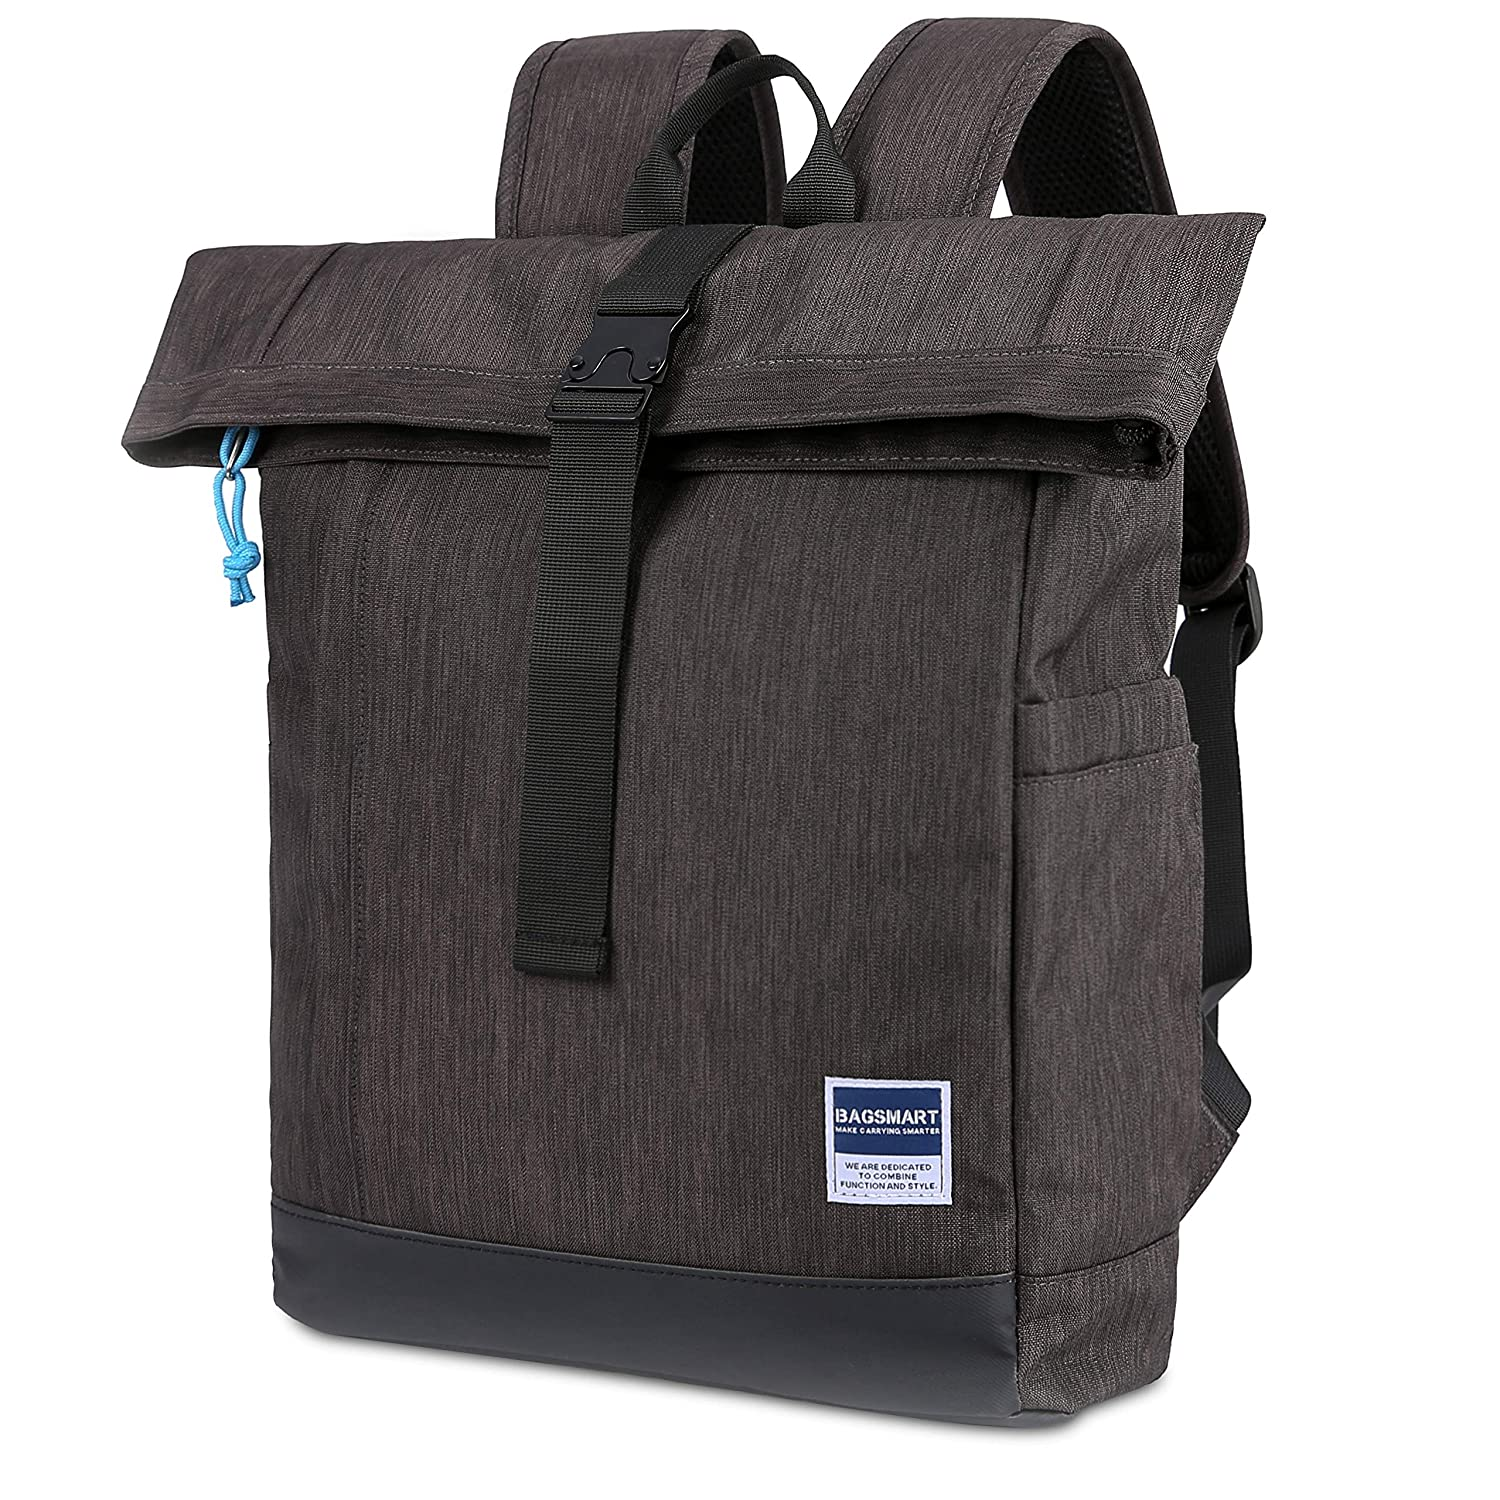 BAGSMART Laptop Backpack Roll-Top Backpack Daypack for School Work Travel Fit up to 15.6 Inch Laptop, 16L